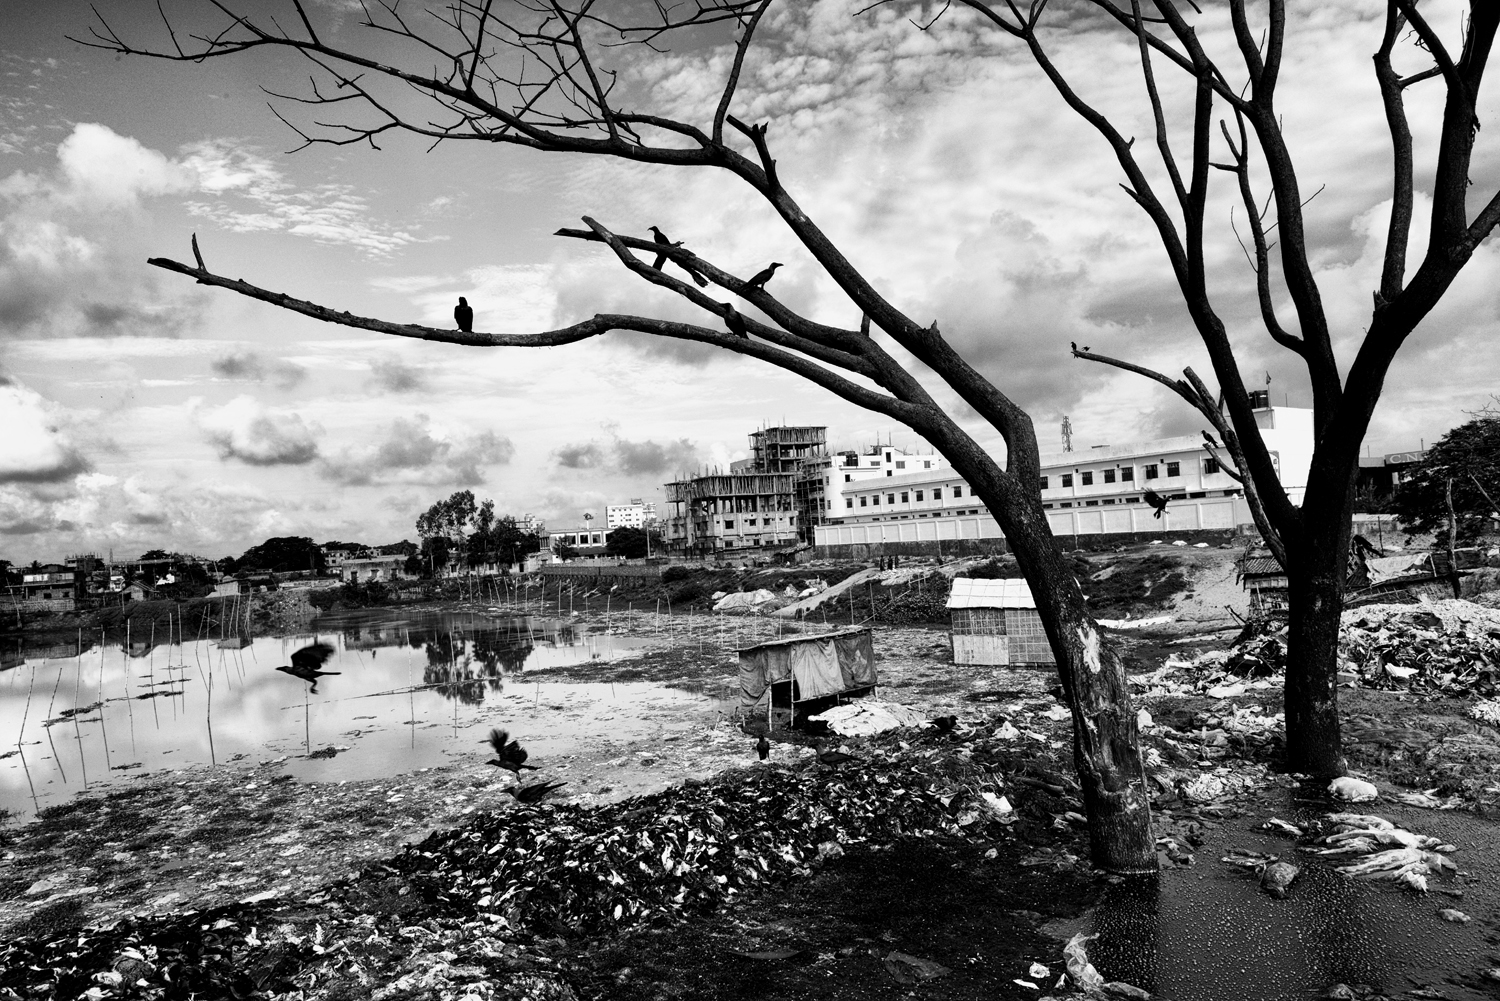 The pollution caused by tanneries killed any kind of life in the lake, Hazaribagh, Dhaka, Bangladesh.